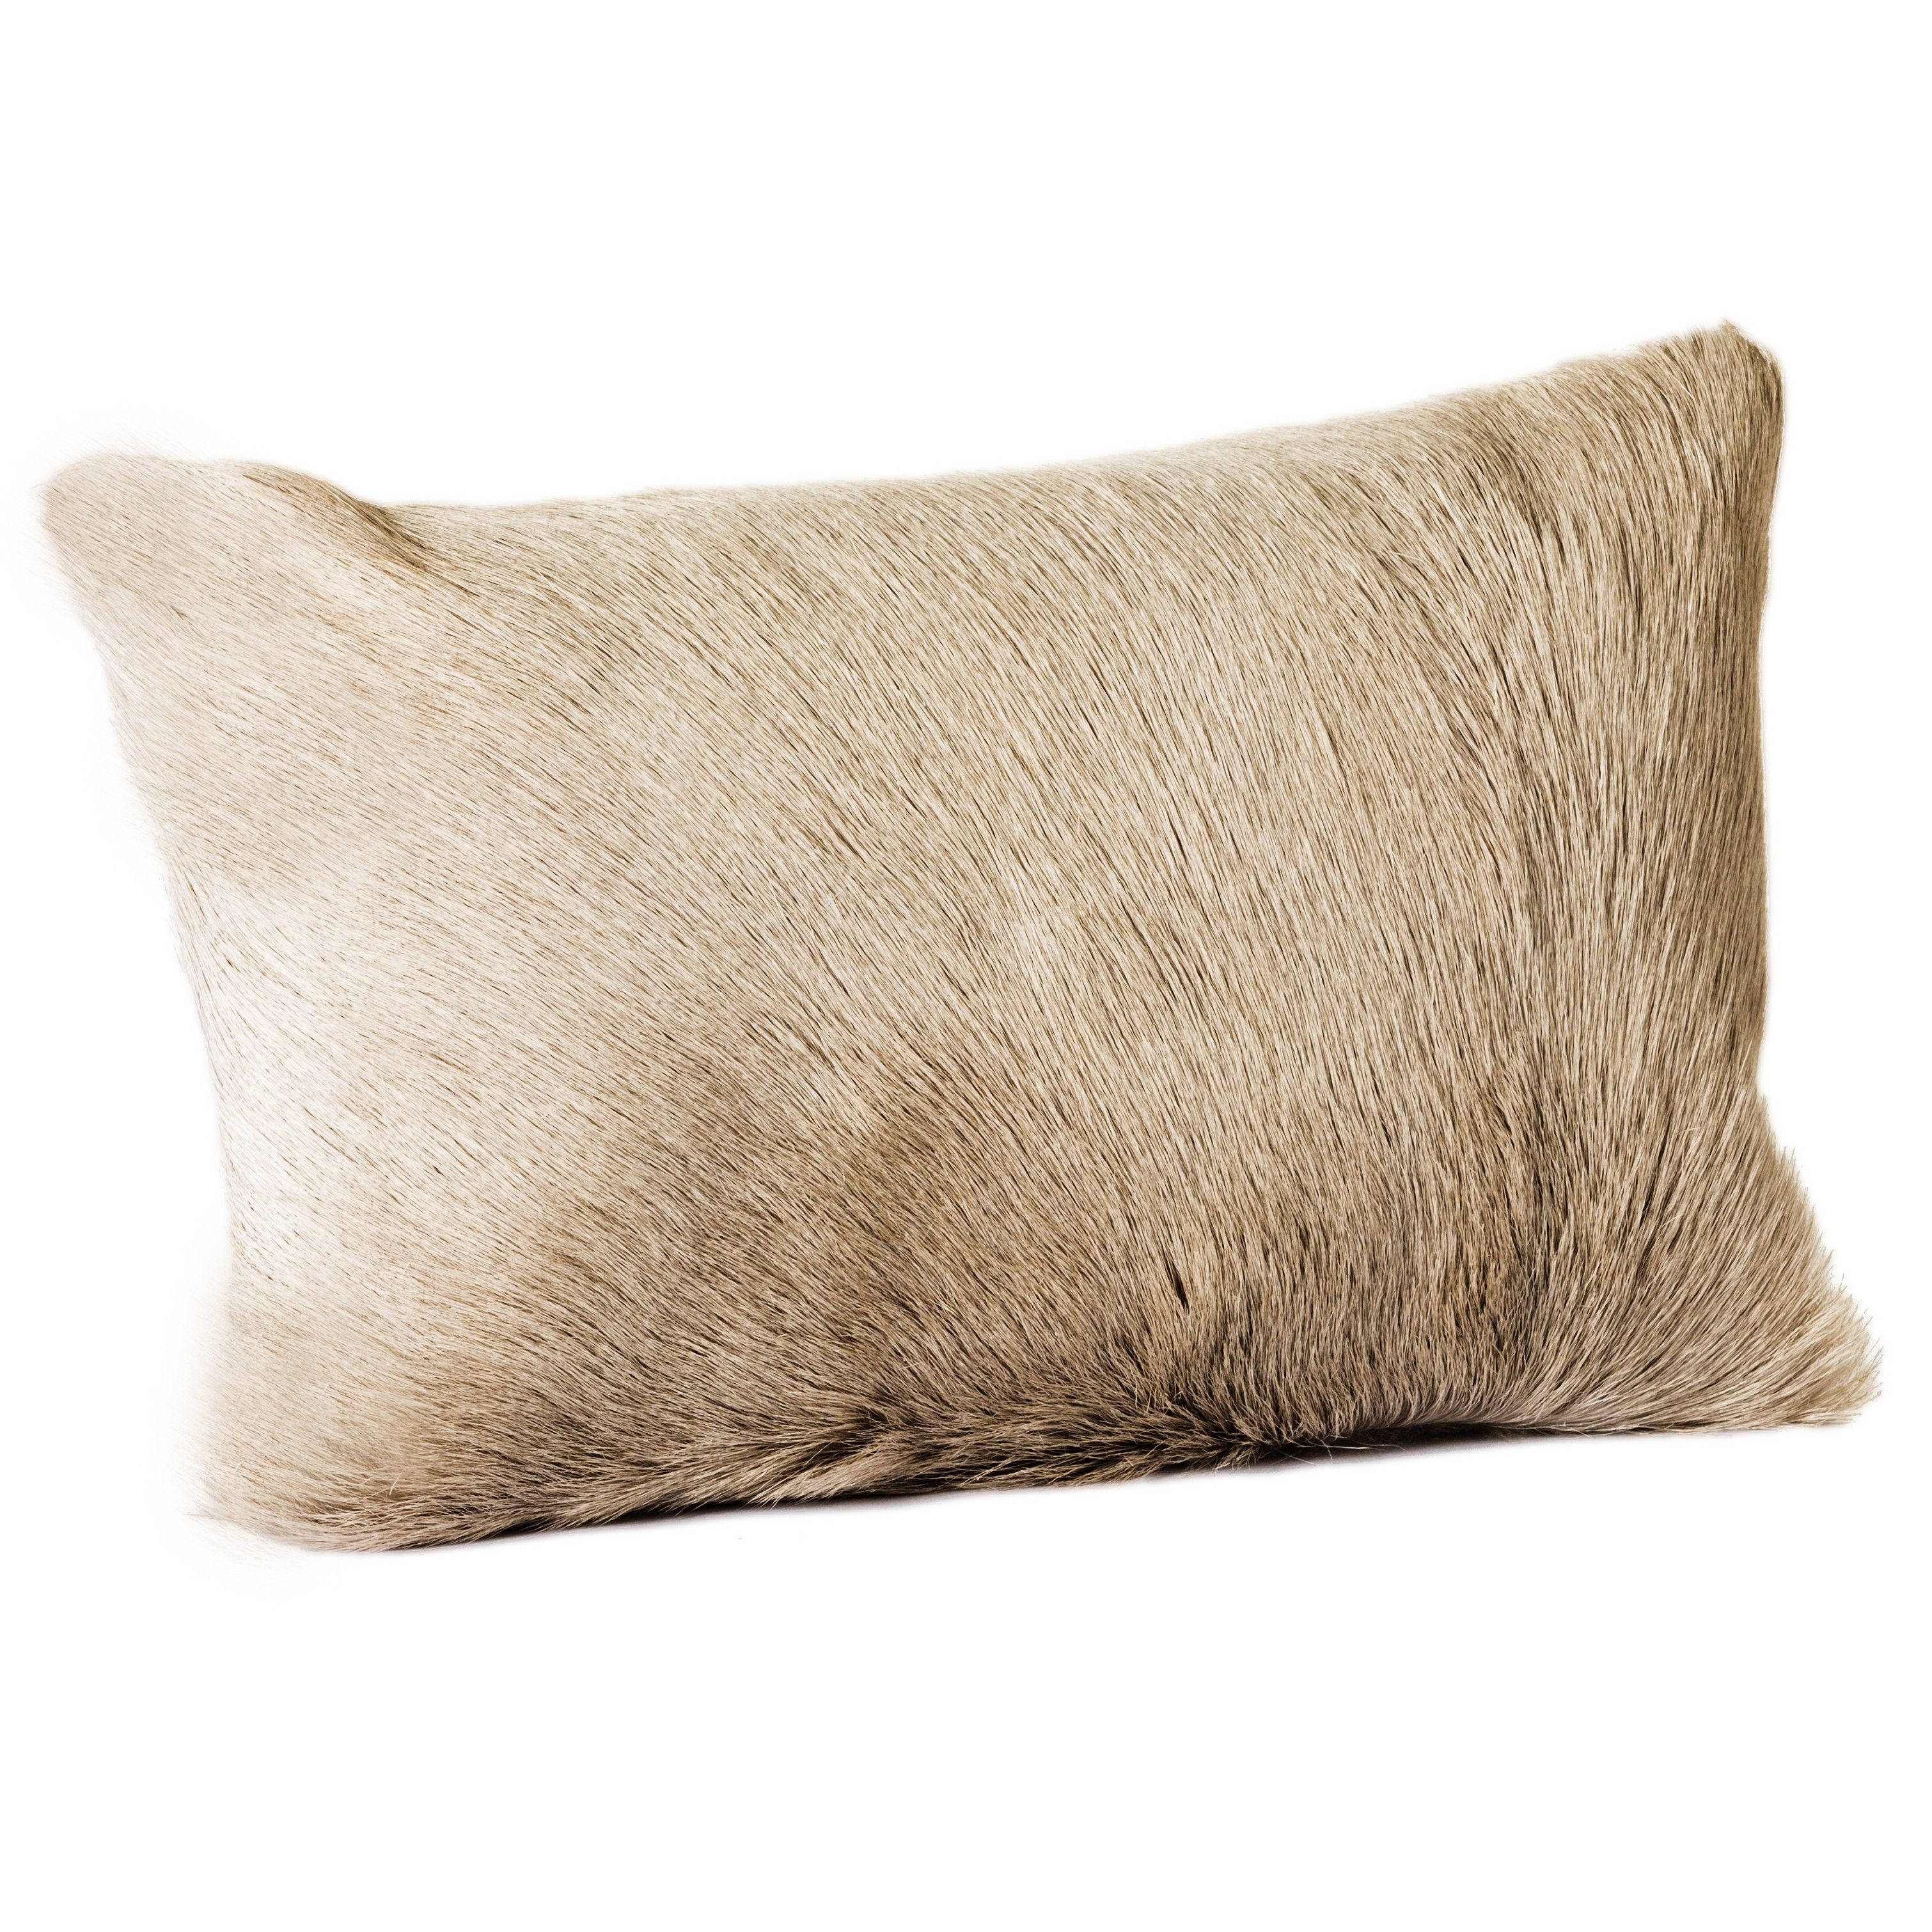 There is nothing softer than our Netro Pillow. It is cozy and sophisticated, while adding the right amount of texture to your pillow party.